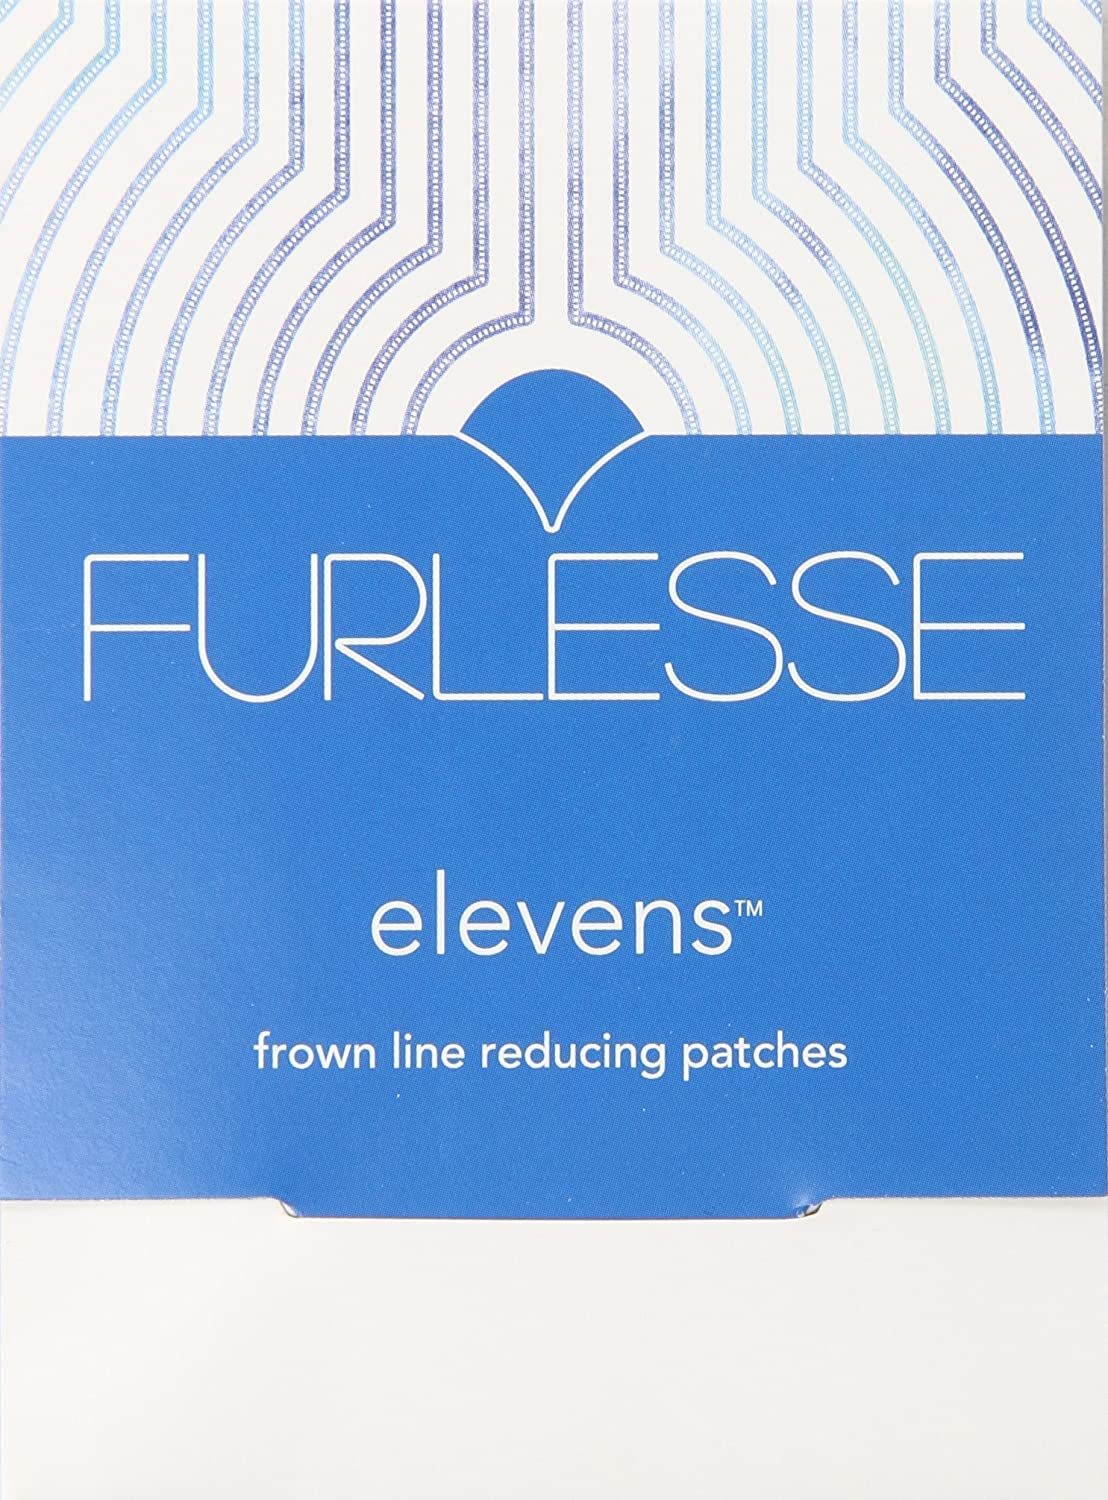 Furlesse–Relax linee sottili tra gli occhi Furlesse Elevens anti-aging Patches for Frown Line Wrinkles